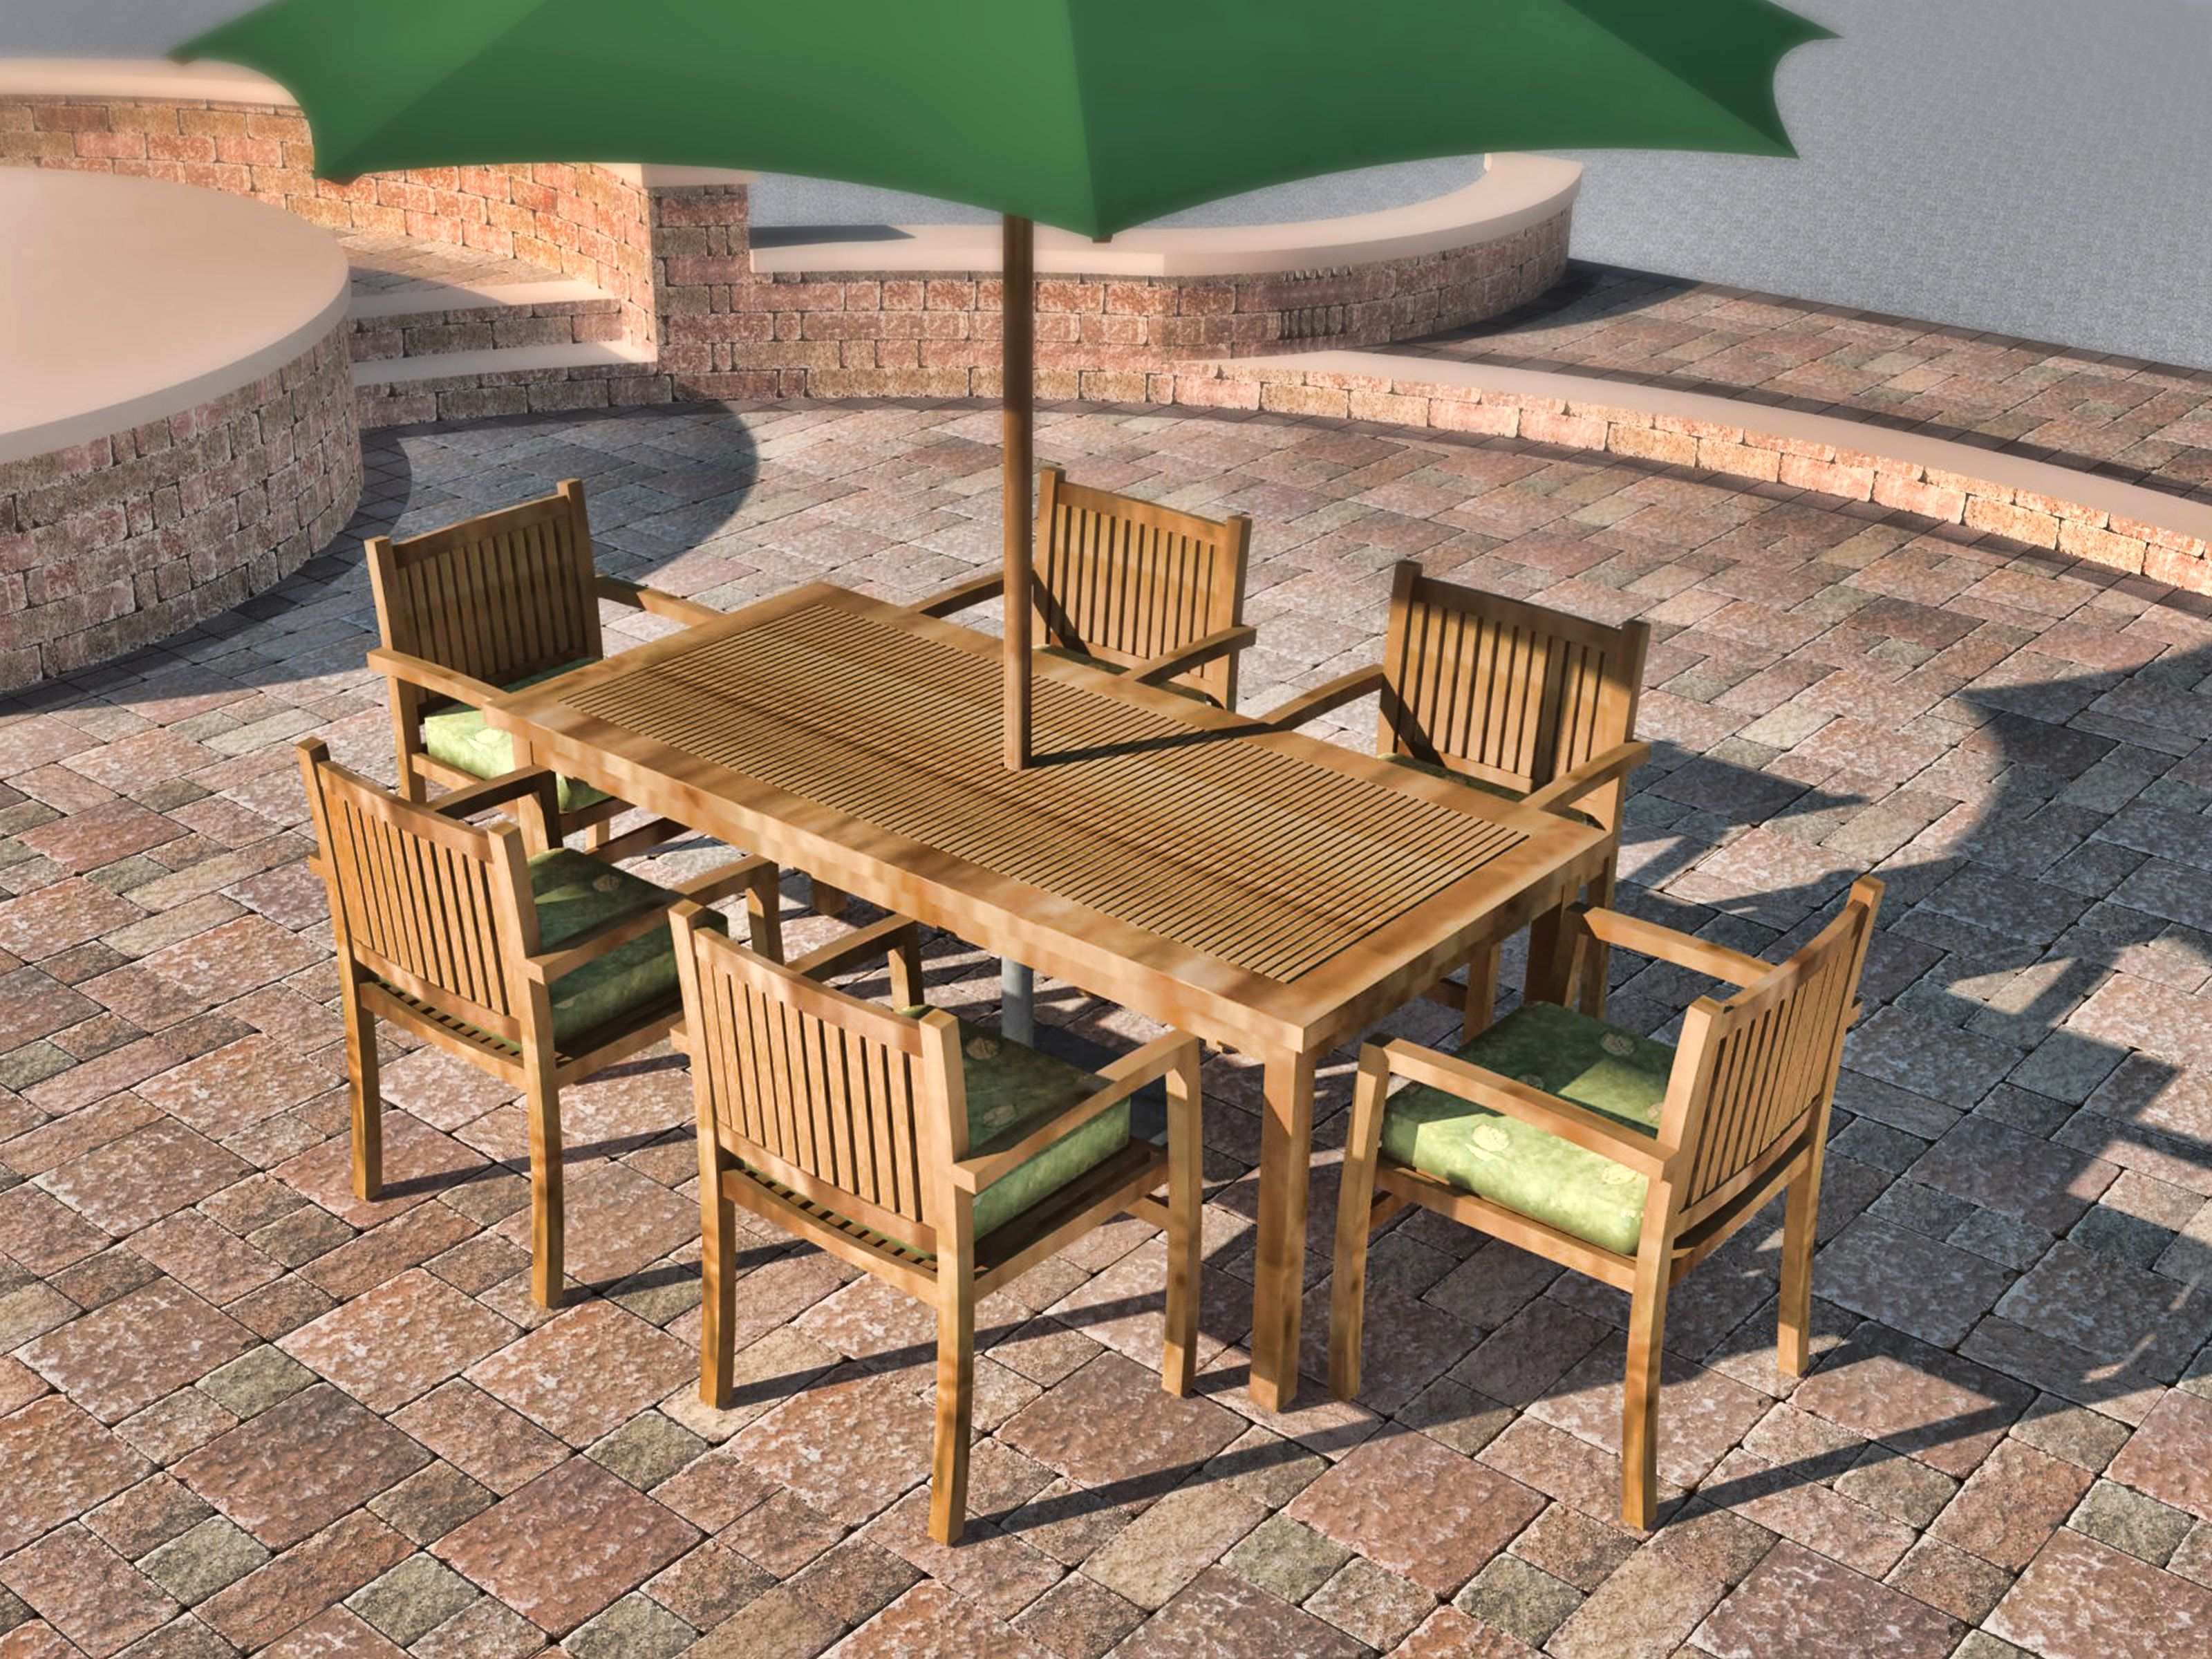 Protect Outdoor Furniture | Outdoor wood furniture ...